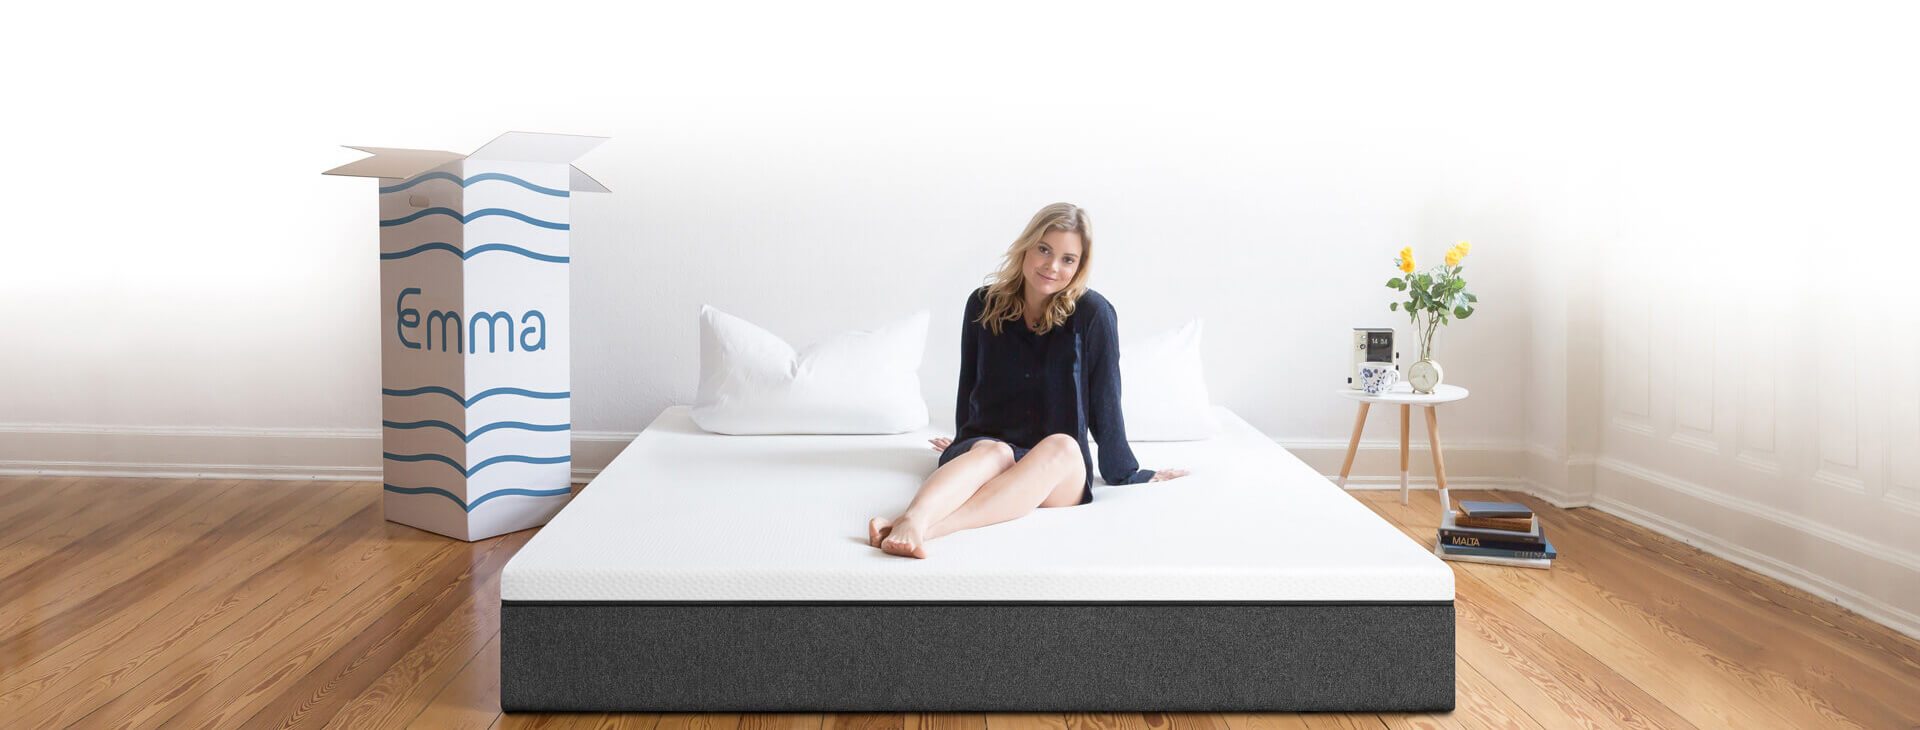 Emma Mattress Reviews Rigorous Ratings Coupon